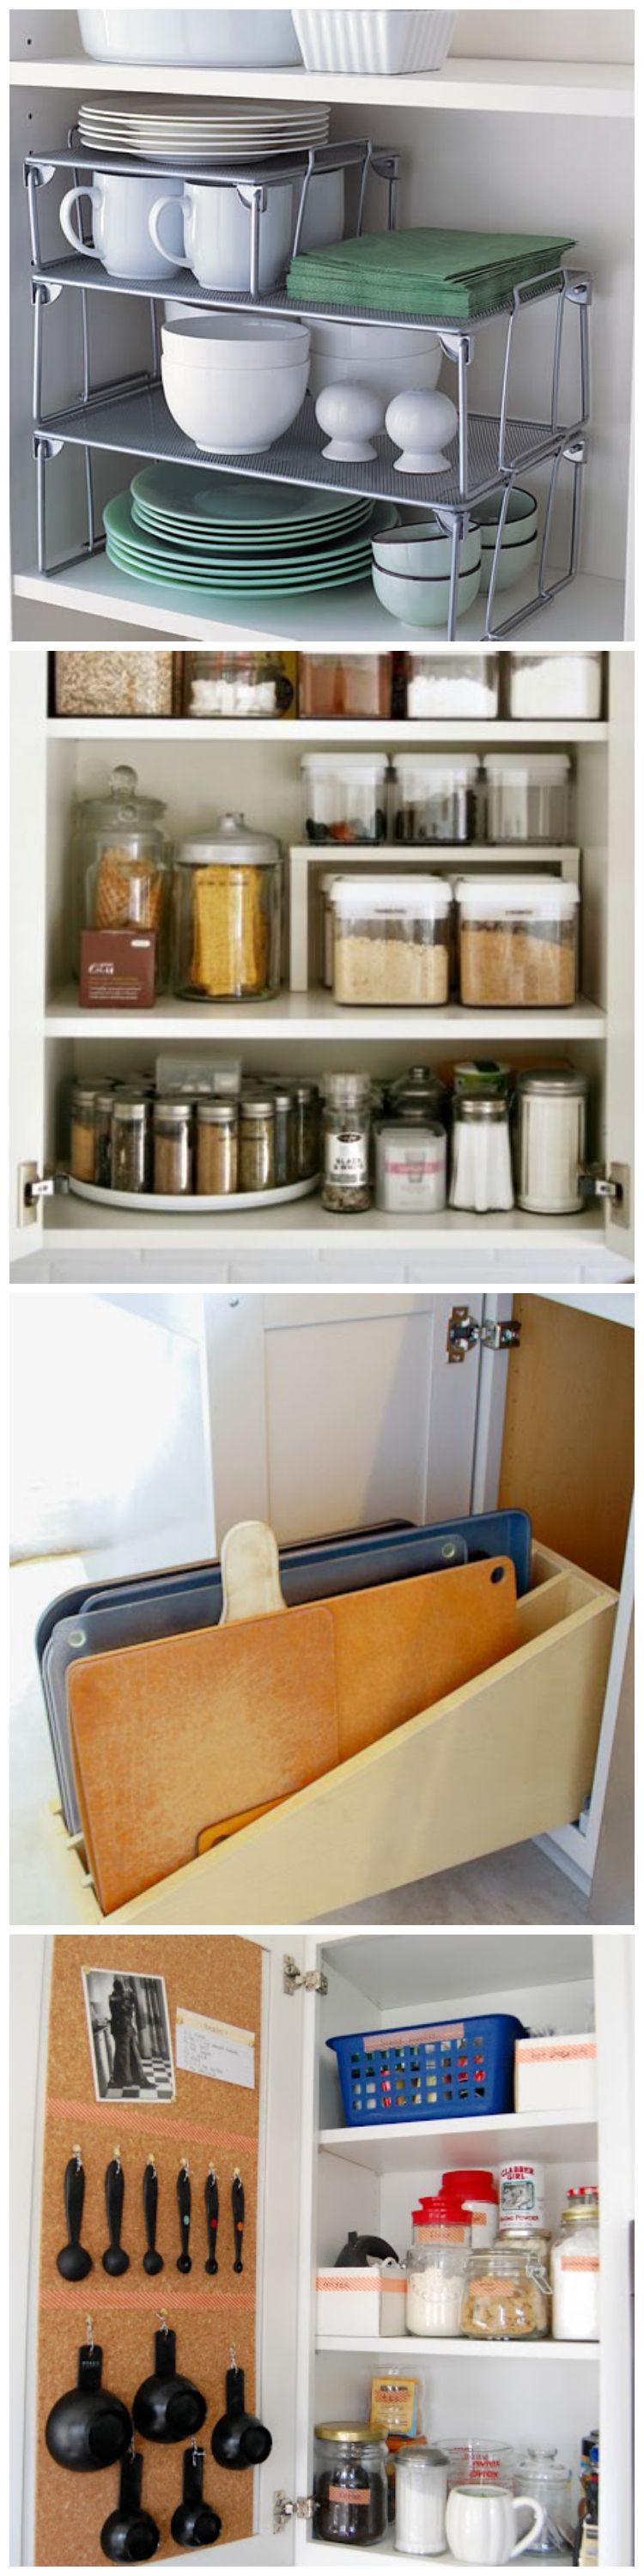 These Insanely Organized Will Inspire Your Next